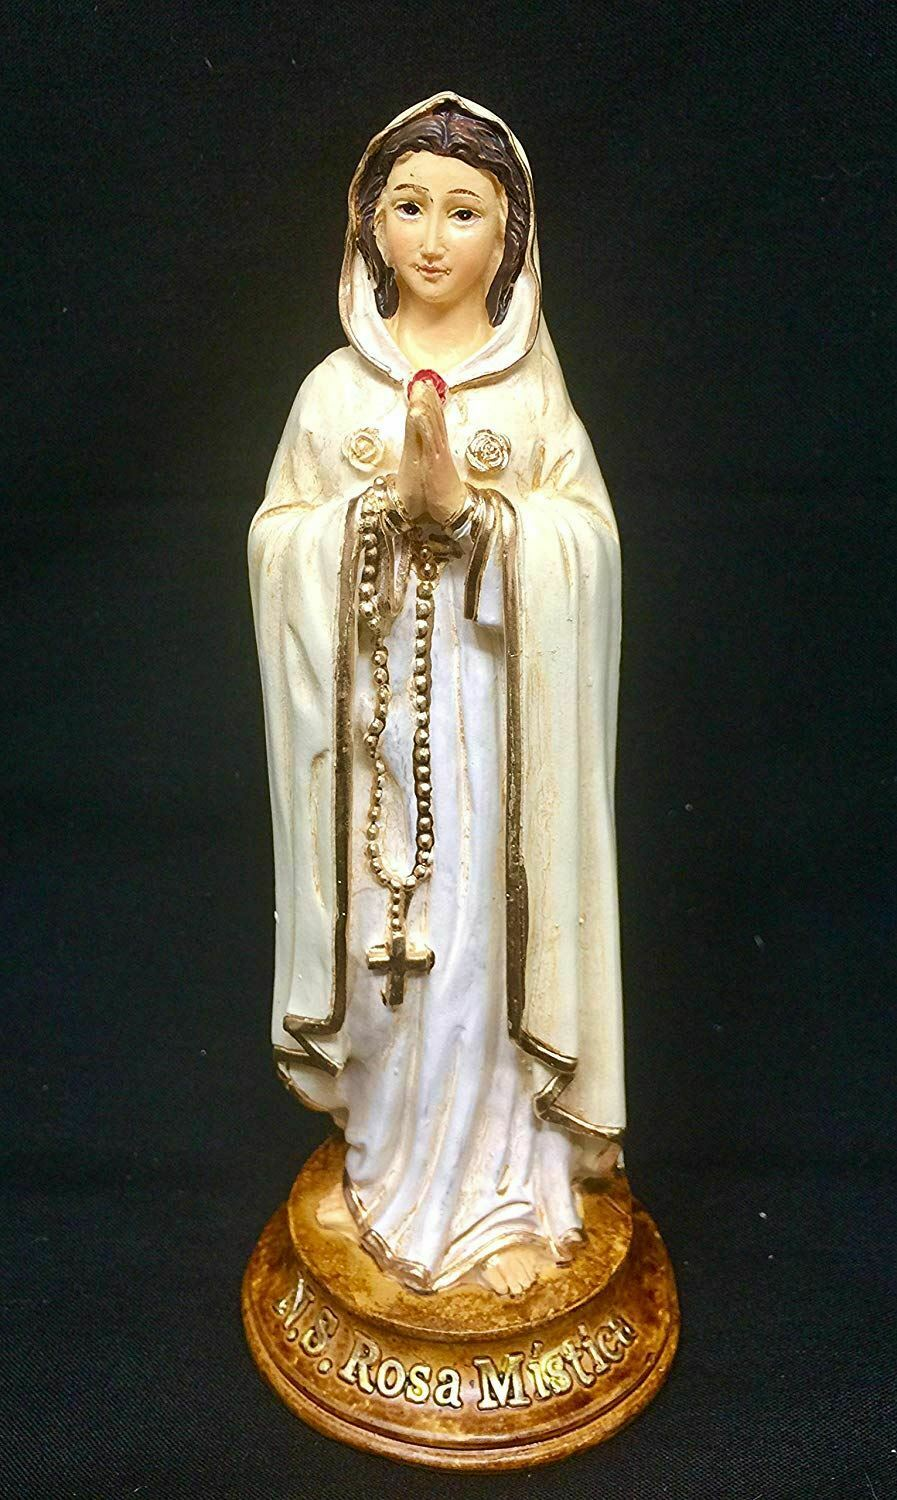 Rosa Mystica Mystic Rose Statue Mary Catholic Sculpture Religious Ornament